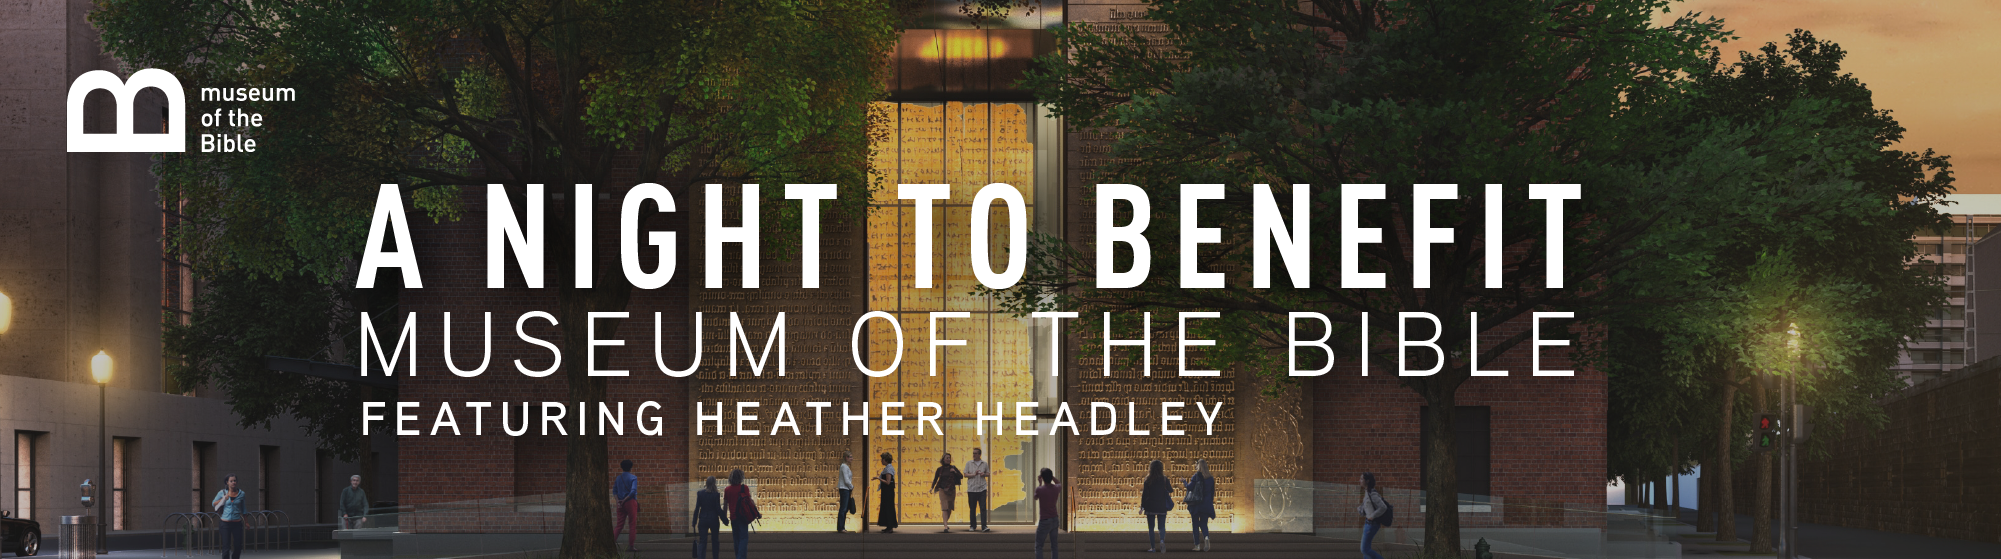 An Evening to Benefit Museum of the Bible Featuring Heather Headley